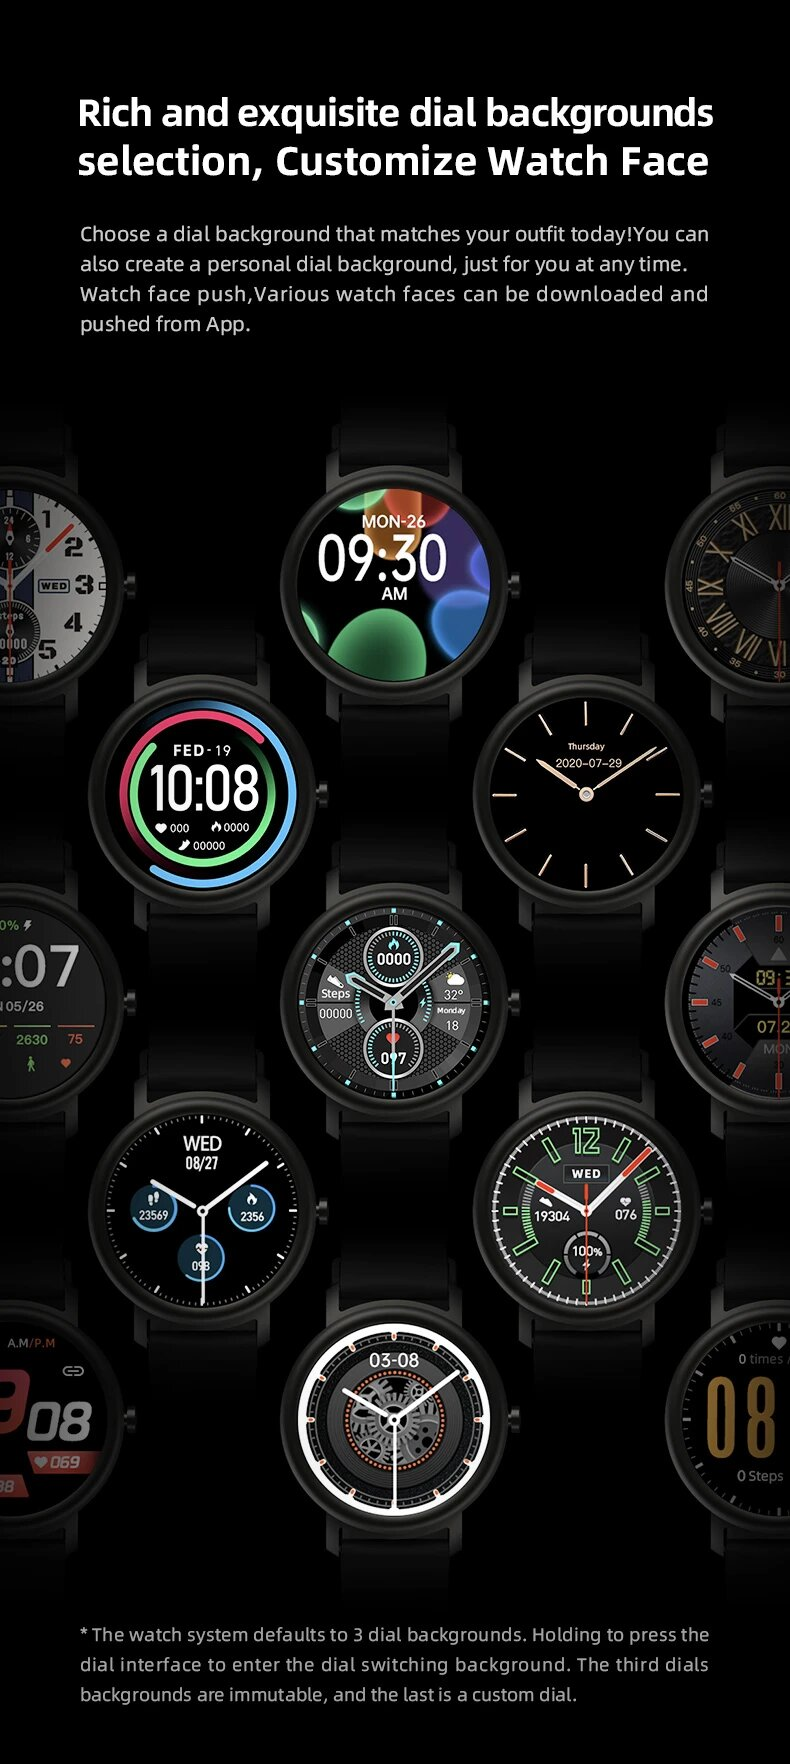 Xiaomi-Mibro-Air-Smart-Watch-in-pakistan-bhsellers.pk-customize-watch-faces